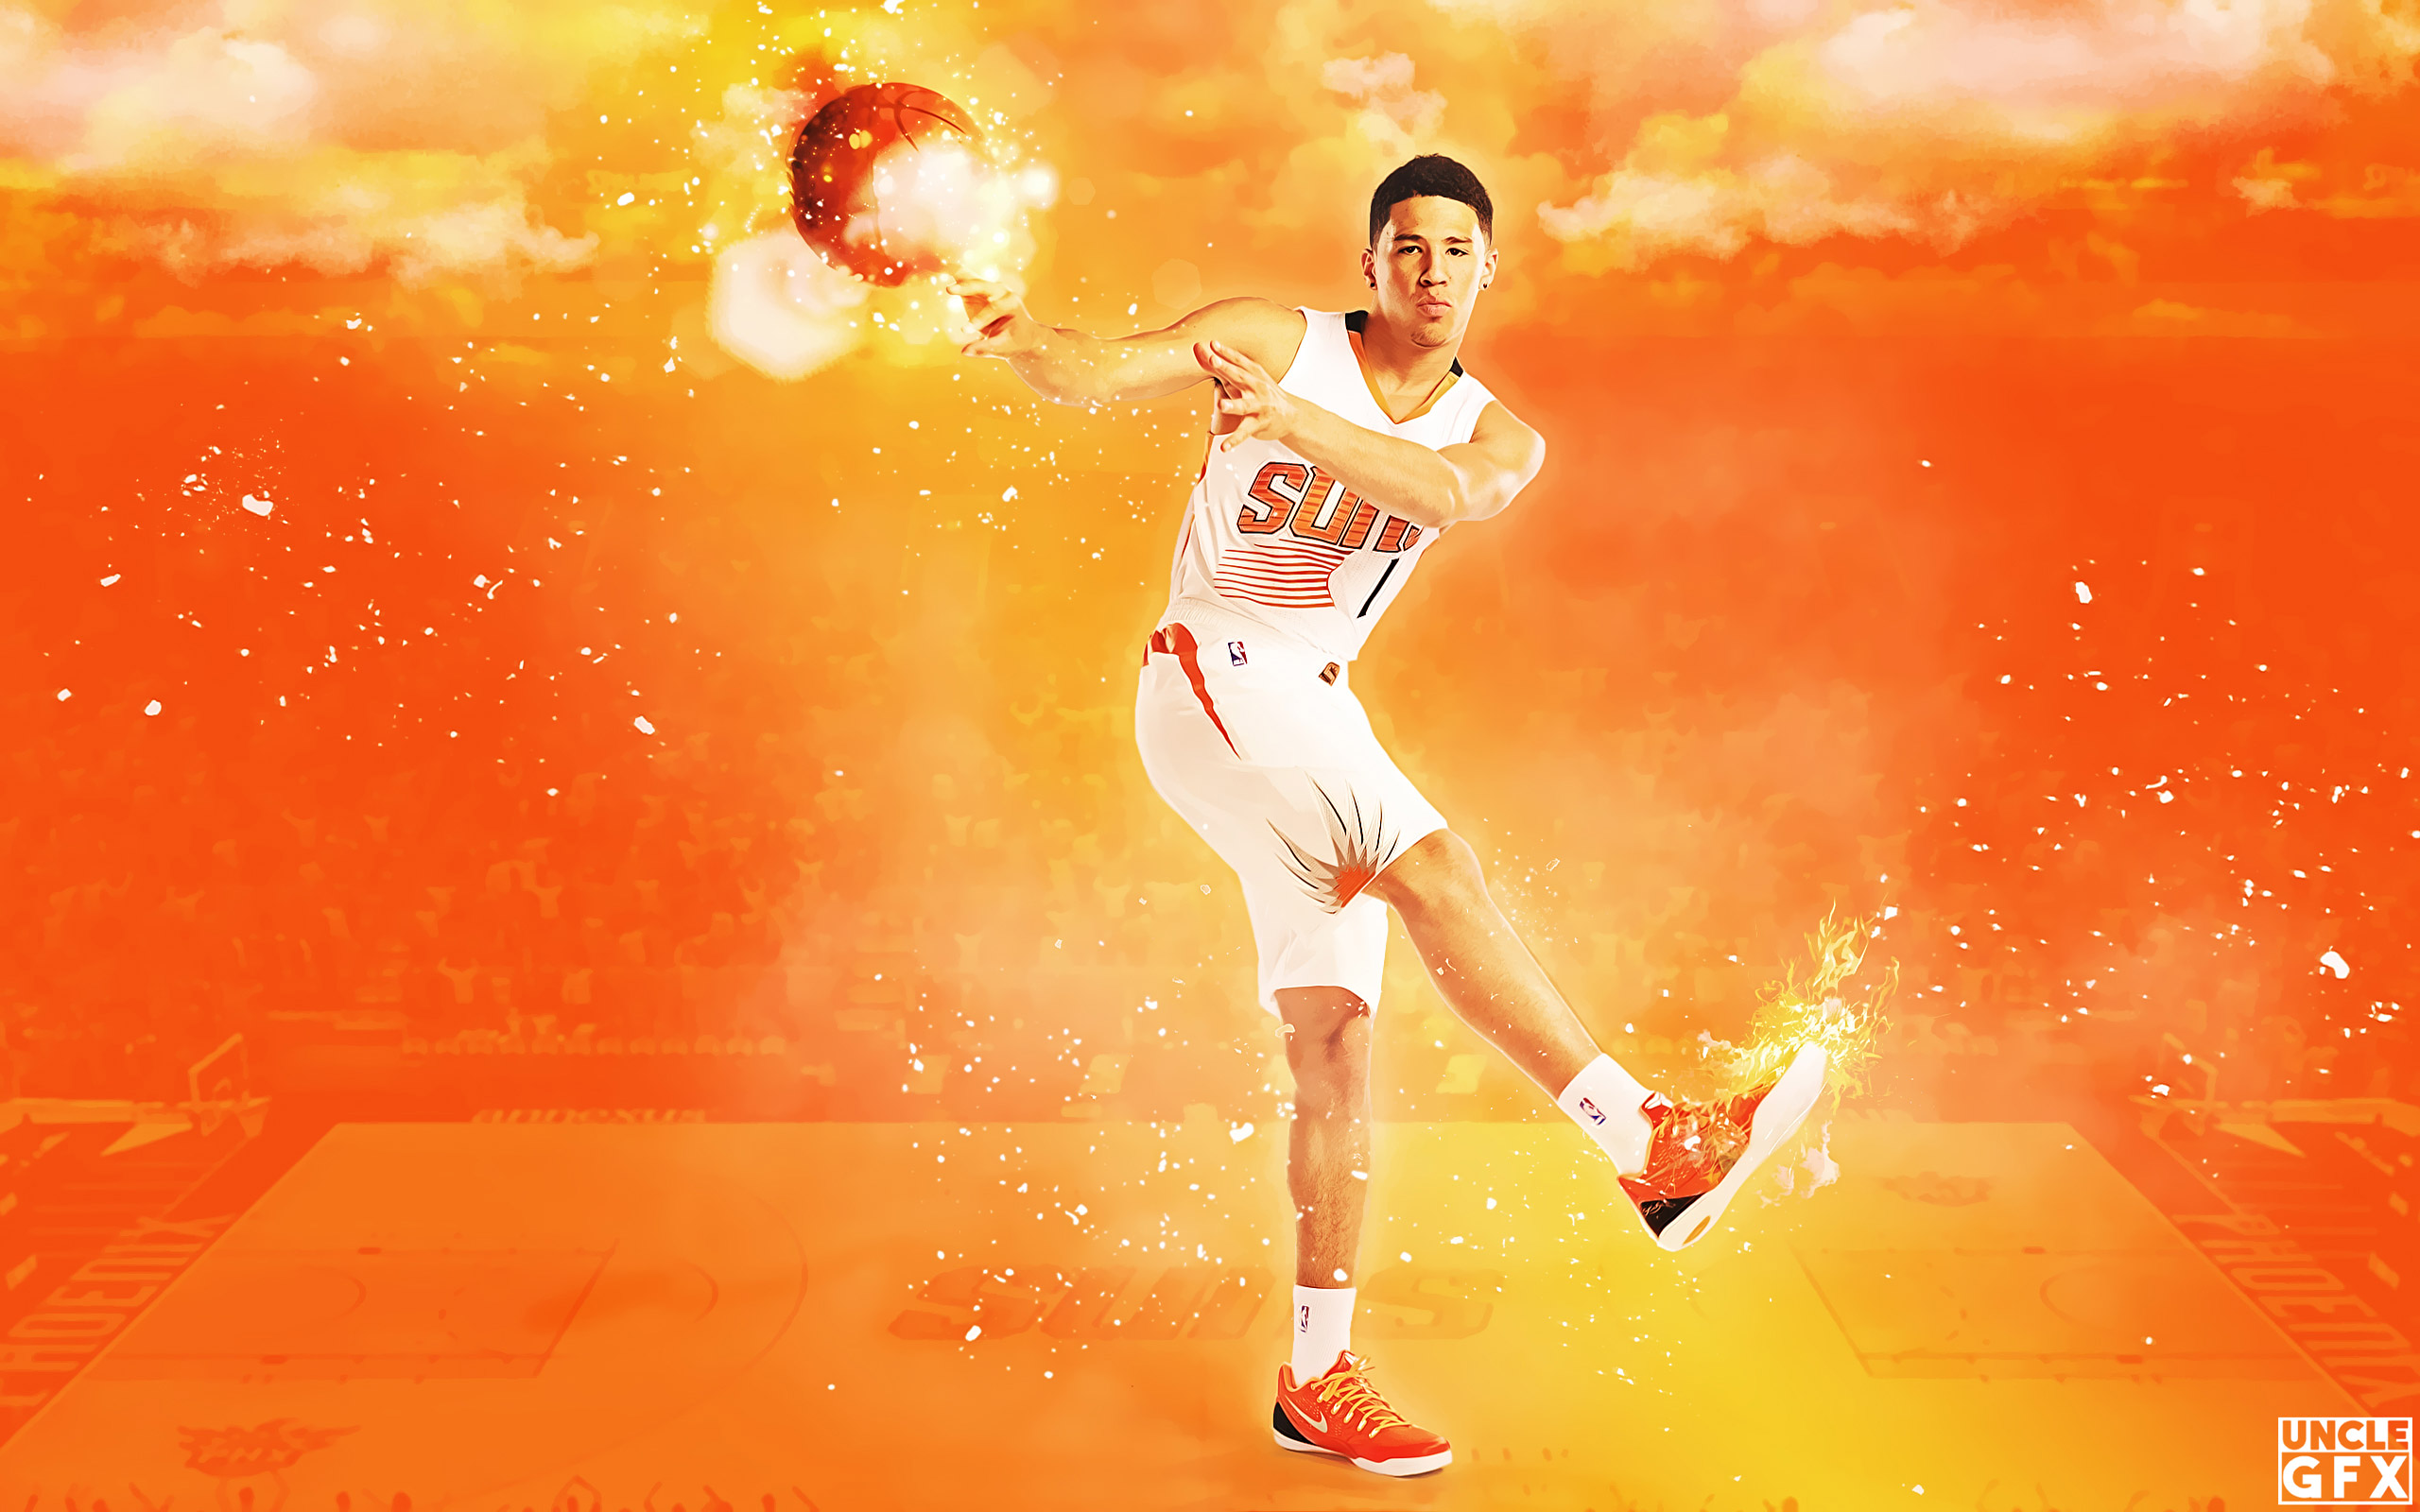 Devin Booker Suns 2017 Wallpaper